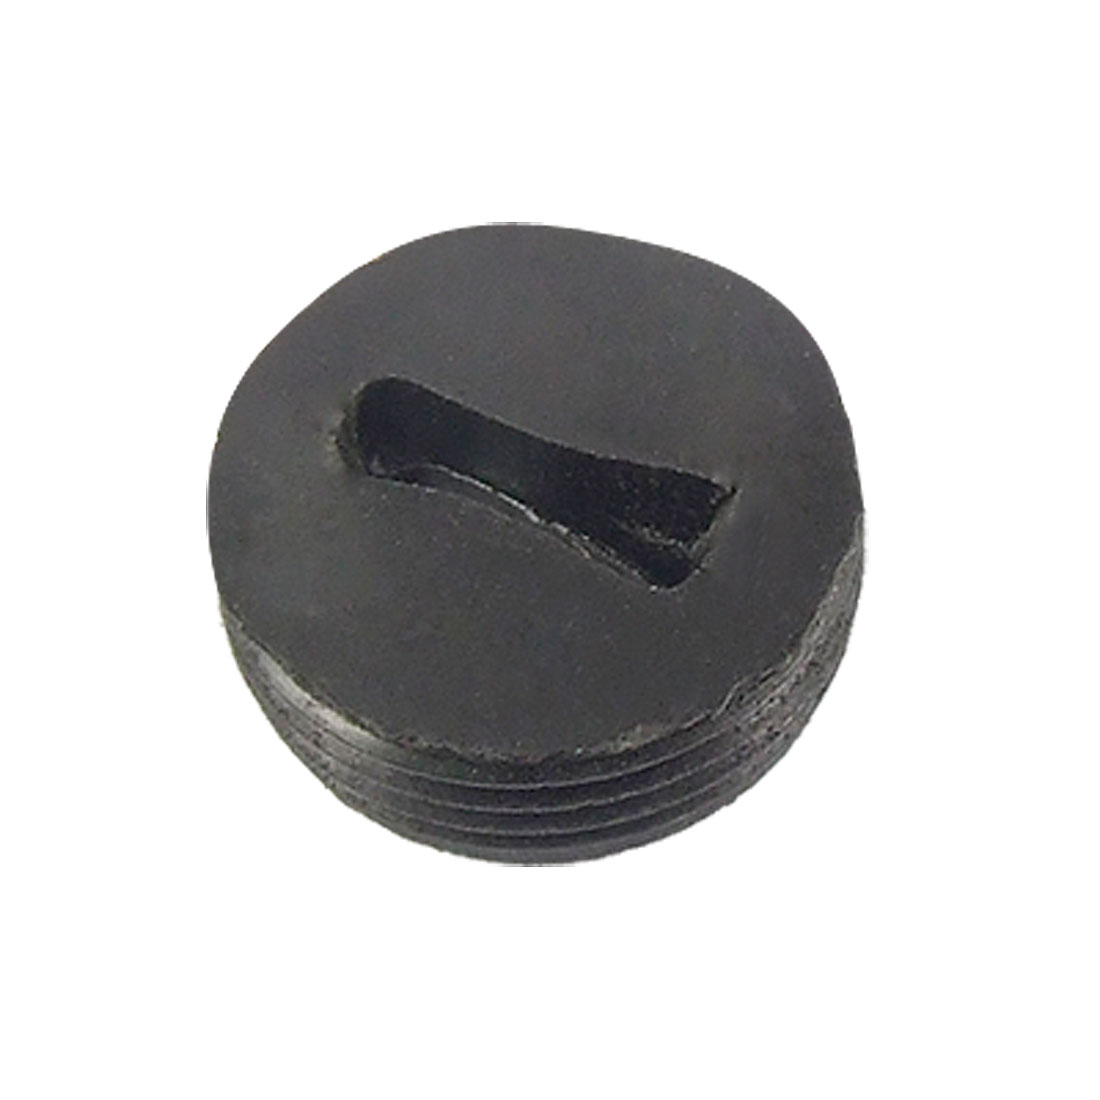 20 Pcs 14.6mm Plastic Carbon Brush Holder Cap for Motor